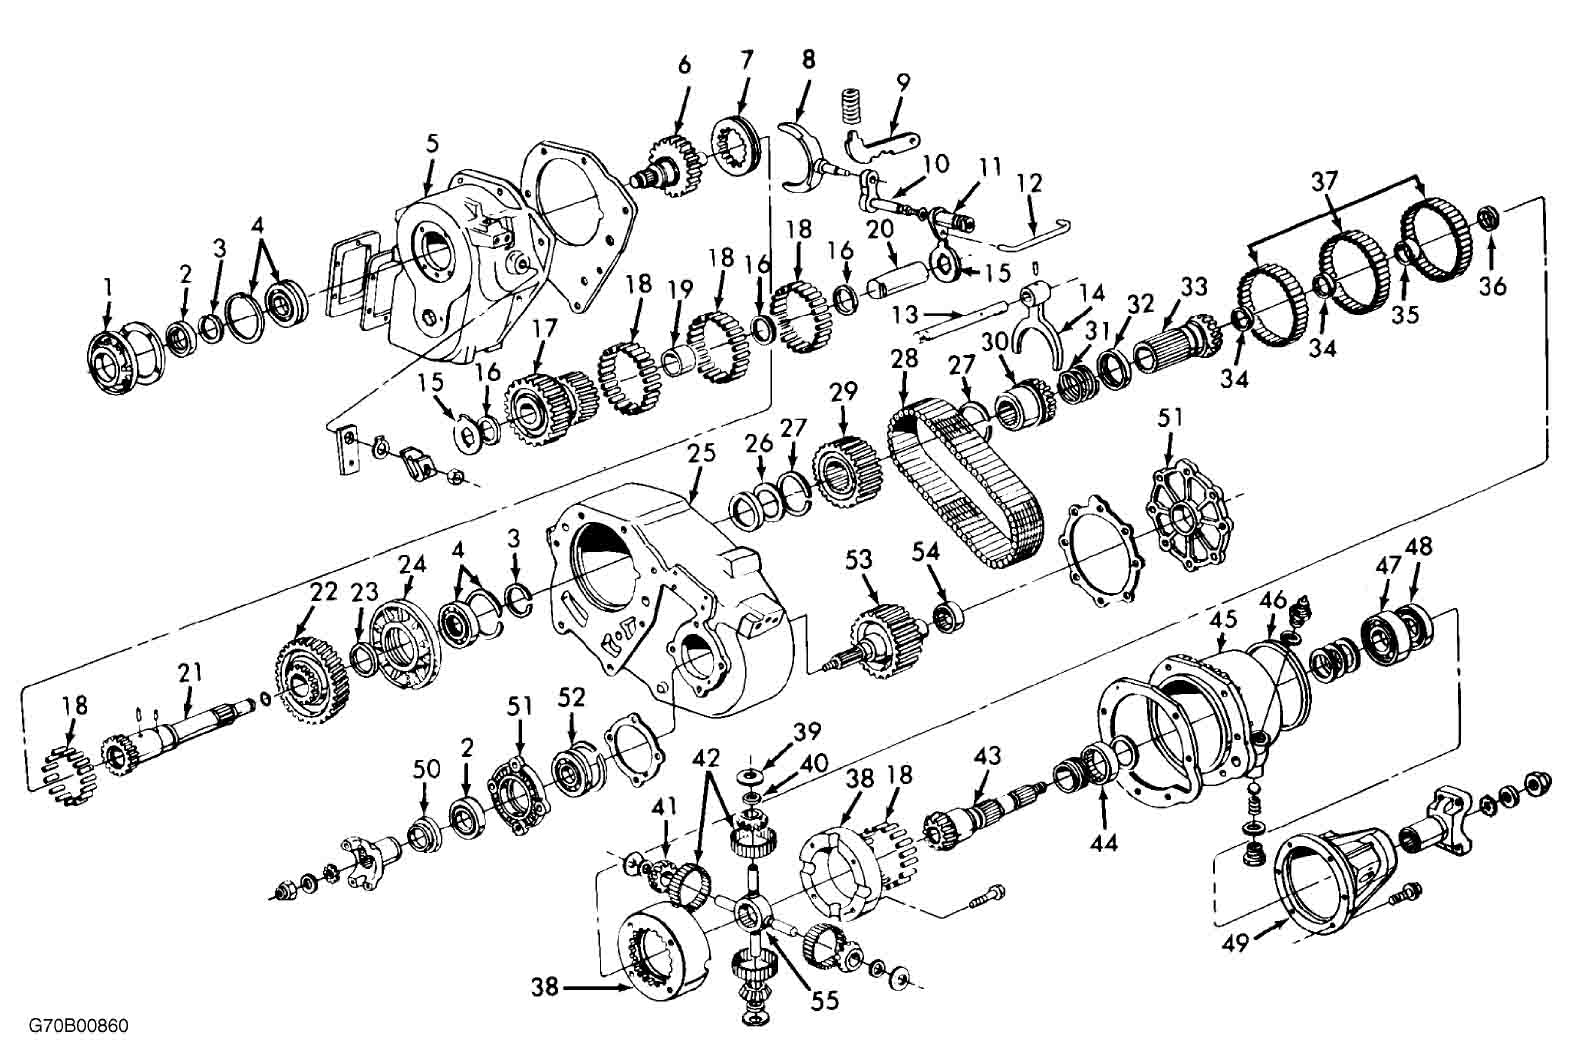 Chevy 205 Transfer Case Diagram